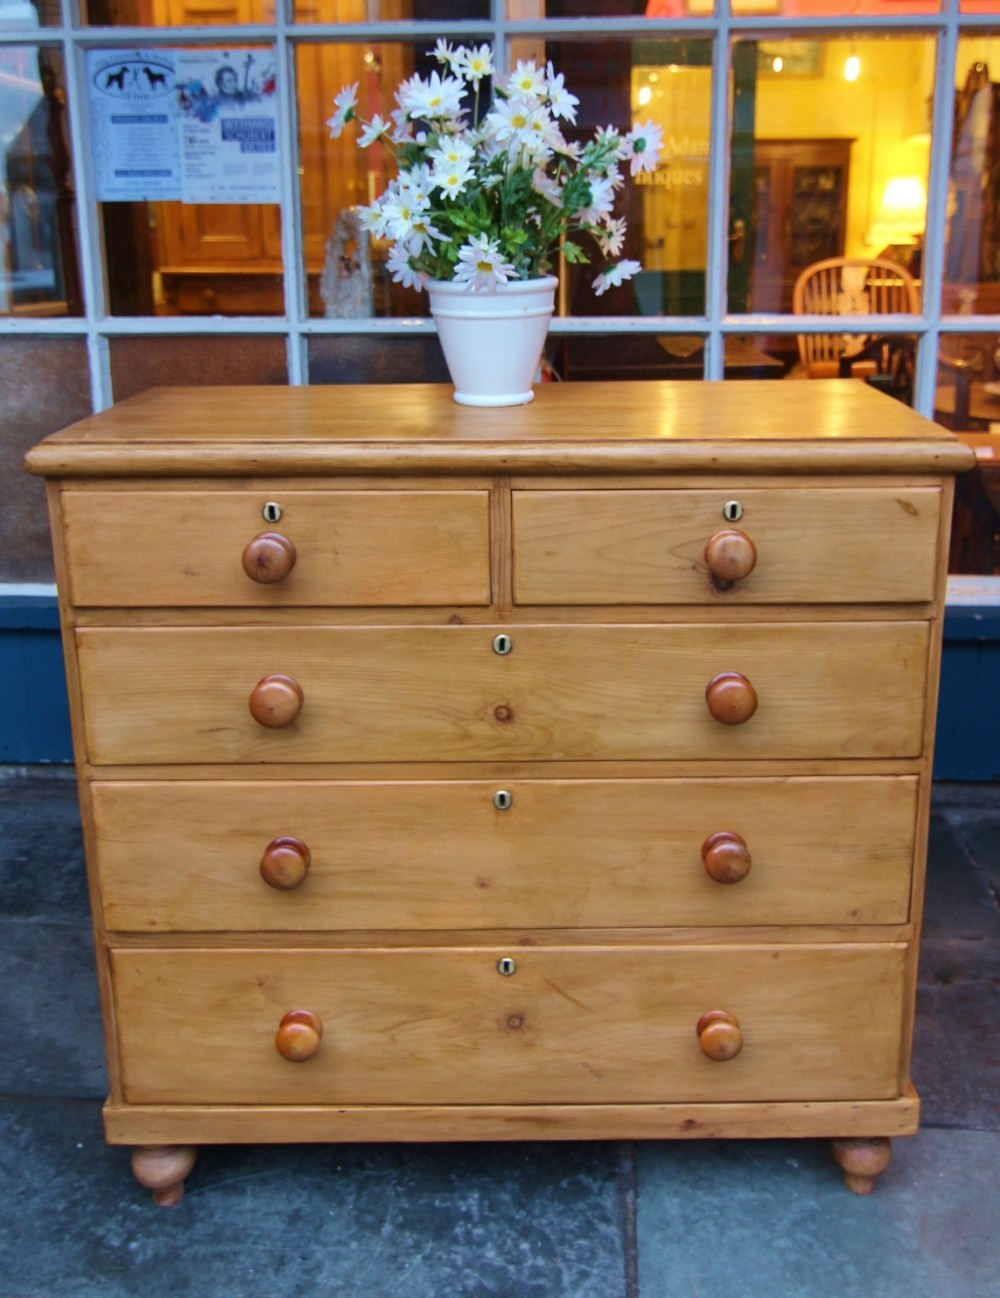 good quality clean 19th century pine 5 drawer chest of drawers with oval brass escutcheons